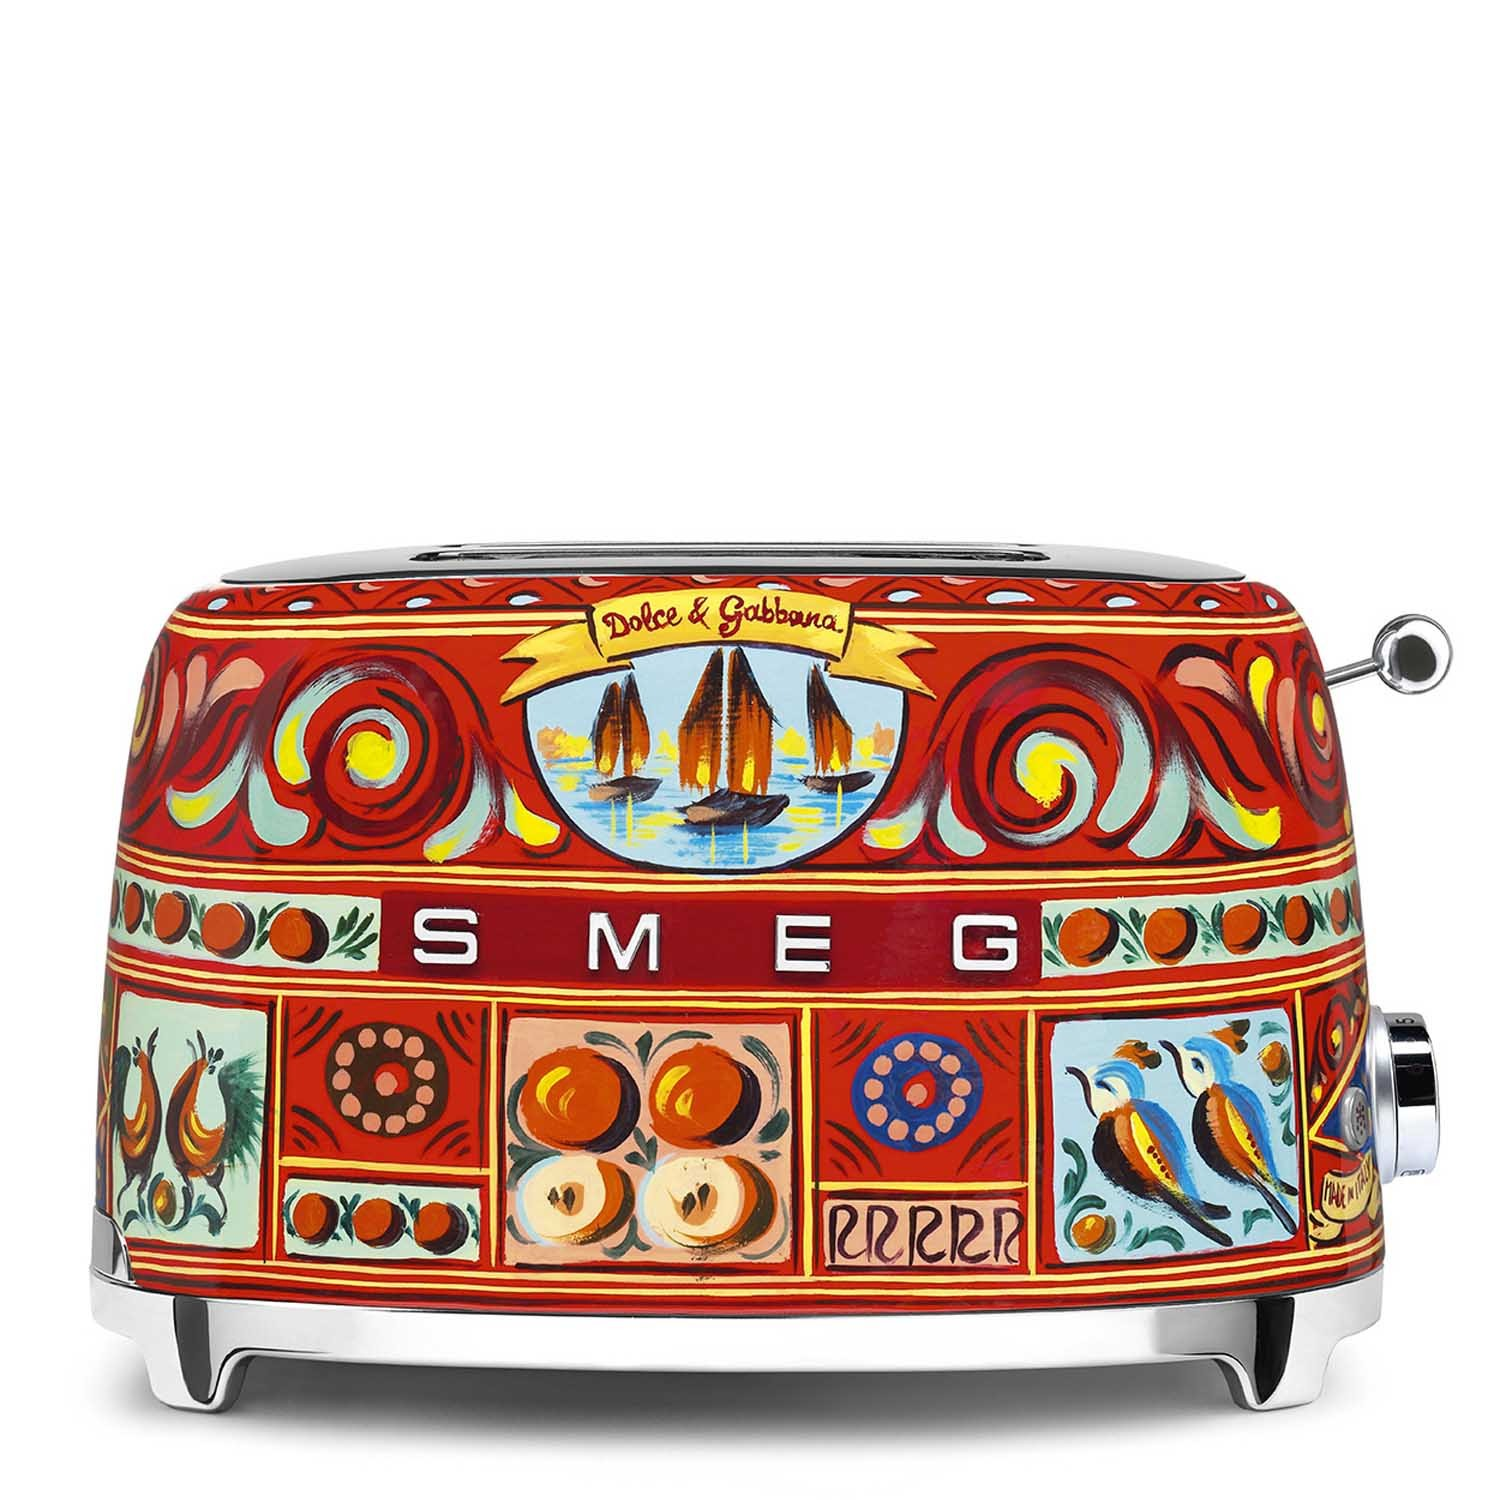 D&G for Smeg 2 Slice Toaster £499.95